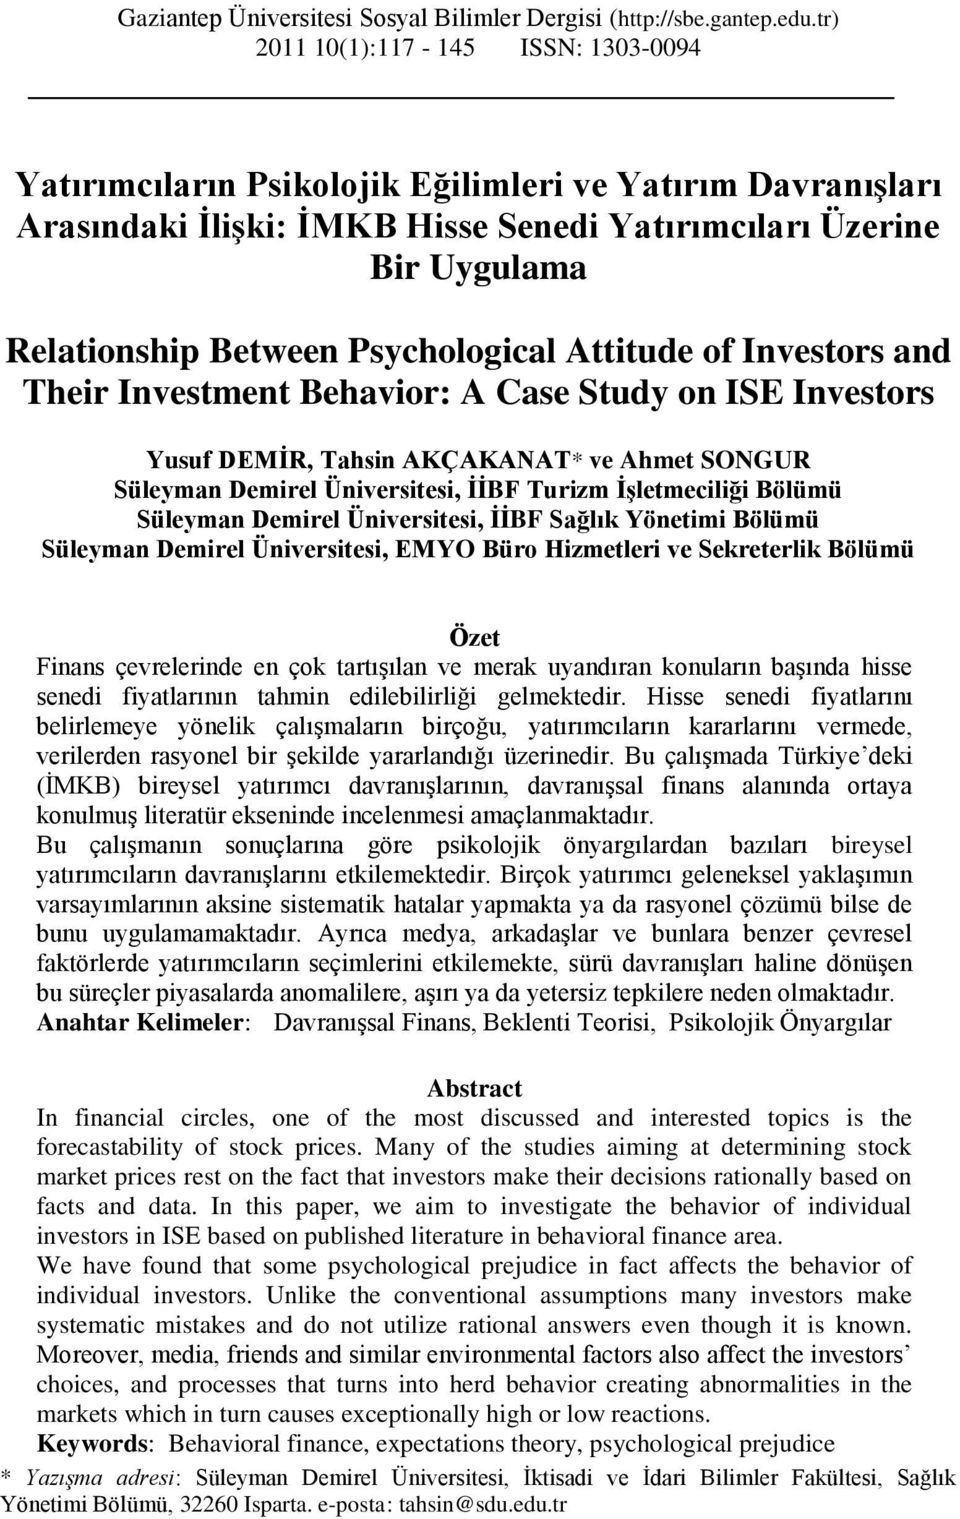 Psychological Attitude of Investors and Their Investment Behavior: A Case Study on ISE Investors Yusuf DEMĠR, Tahsin AKÇAKANAT* ve Ahmet SONGUR Süleyman Demirel Üniversitesi, ĠĠBF Turizm